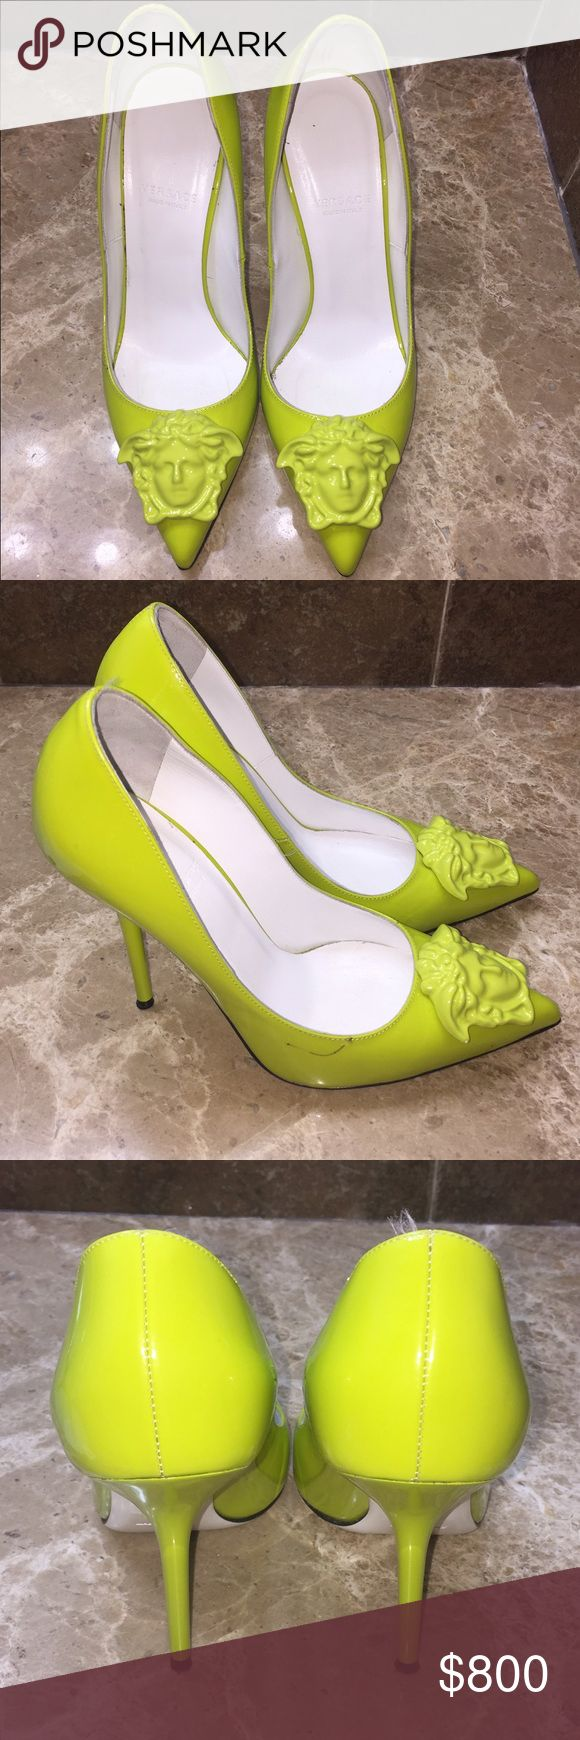 Versace neon pump medusa head Versace neon pump medusa head (without box, pen mark and black dot ) as seen in the picture (size 36) Versace Shoes Heels